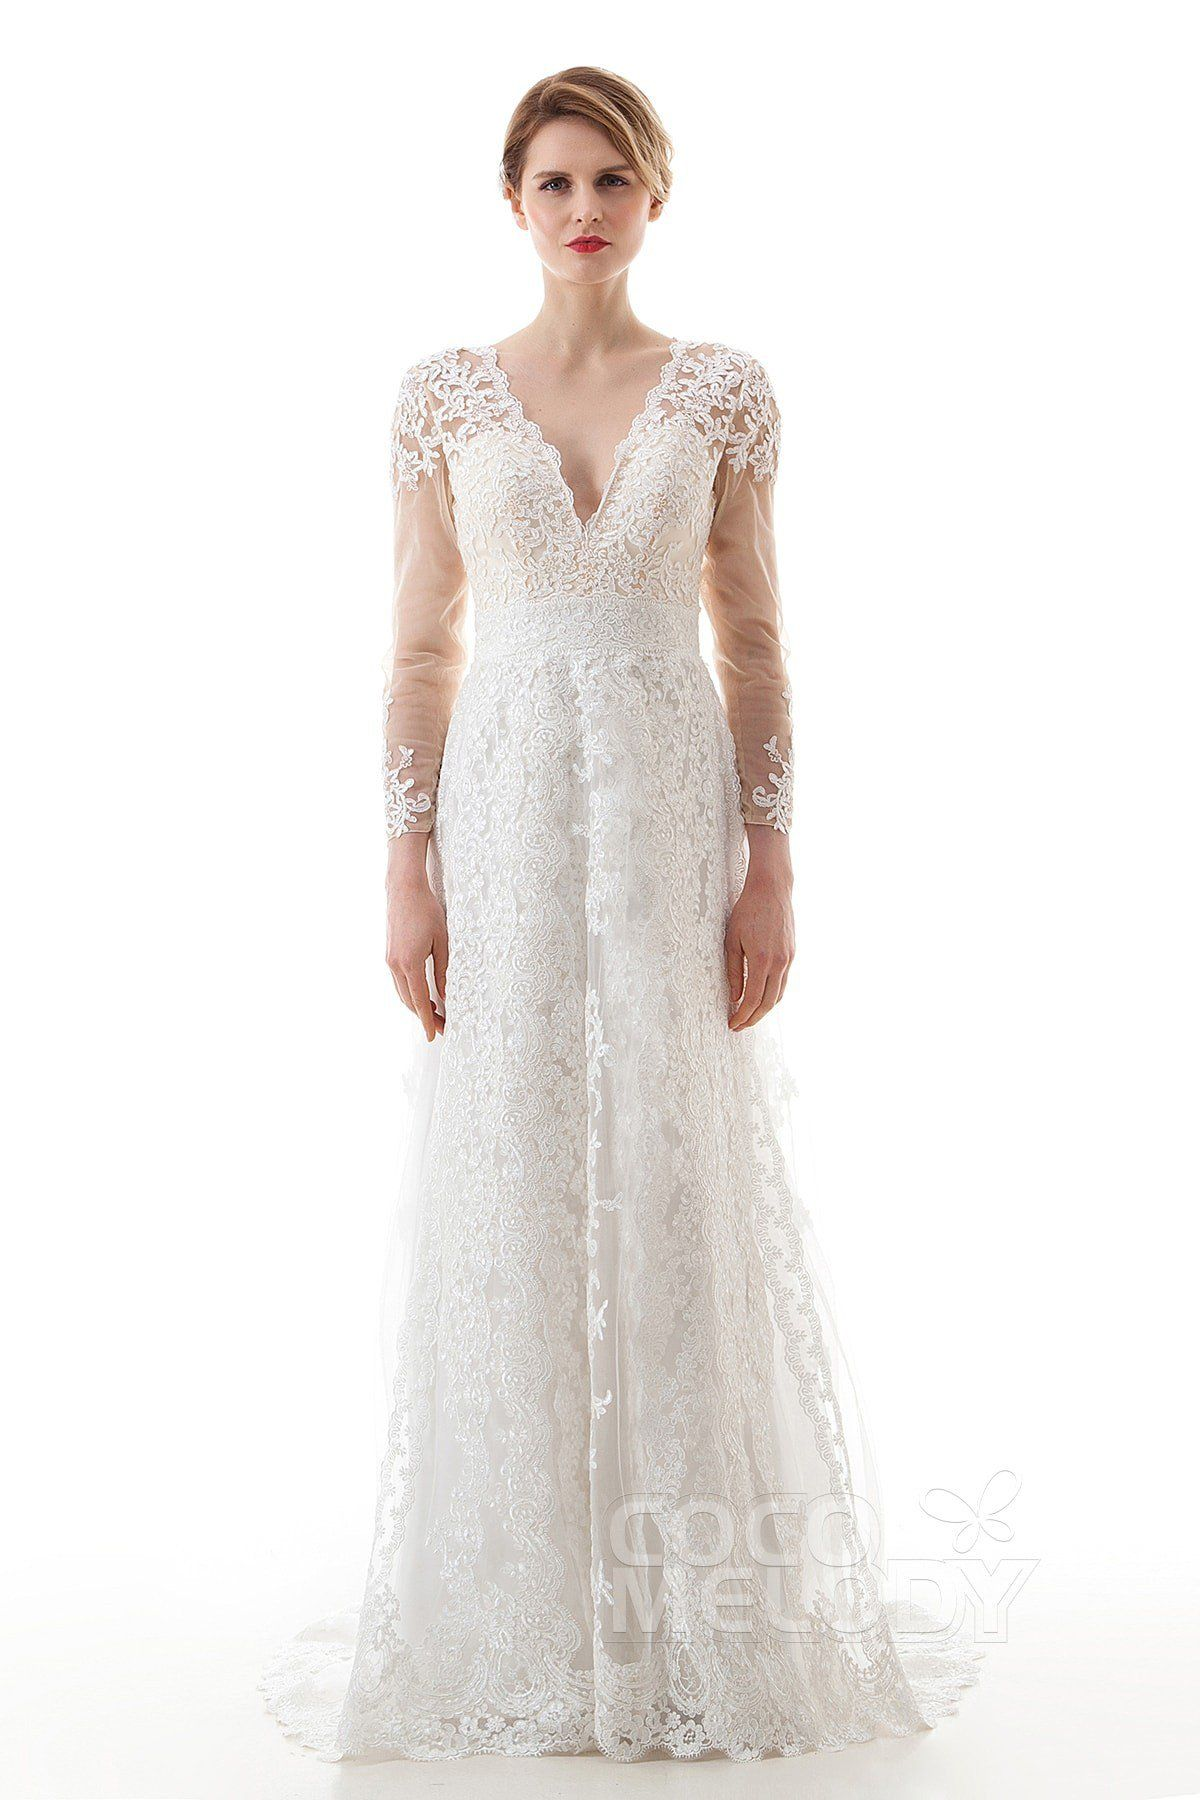 ff6182ece411 Latest Sheath V-Neck Natural Lace and Tulle Ivory Long Sleeve Zipper With  Buttons Wedding Dress with Appliques LD4452 #weddingdresses #customdresses  ...